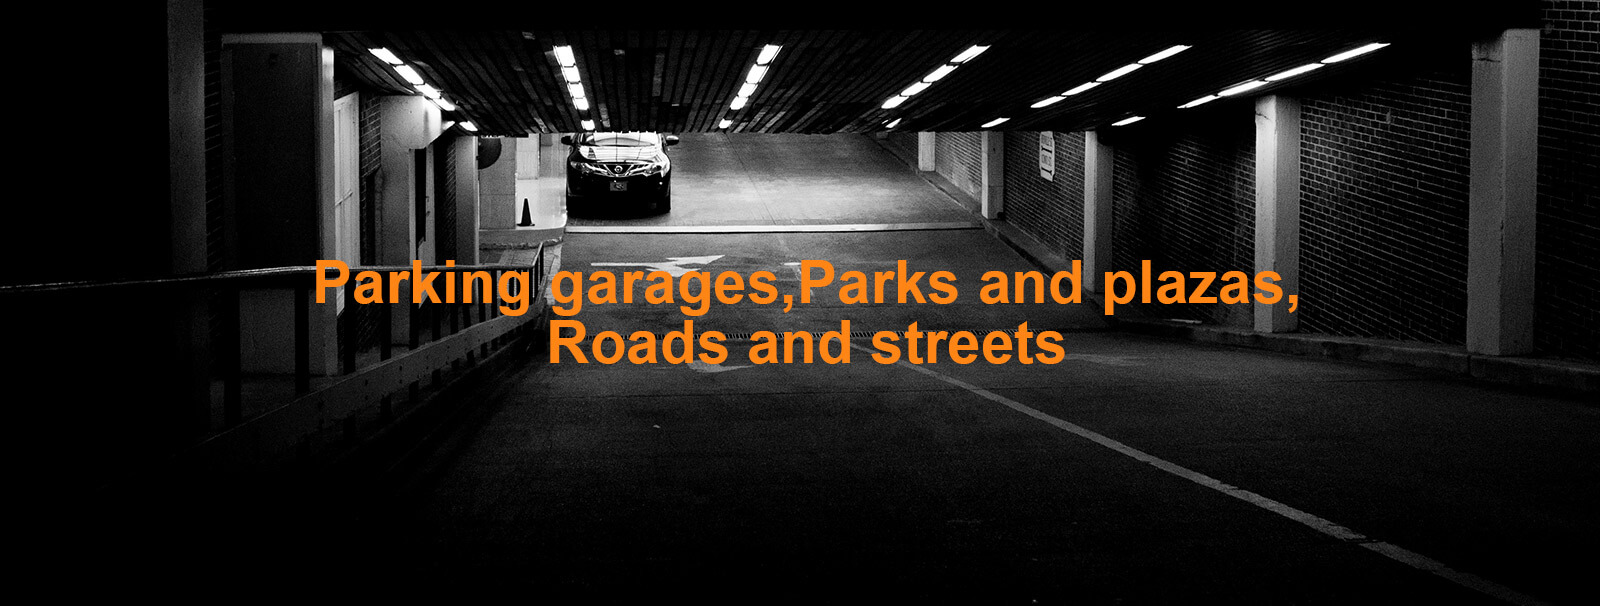 Parking garages,Parks and plazas,Roads and streets - Flood Light